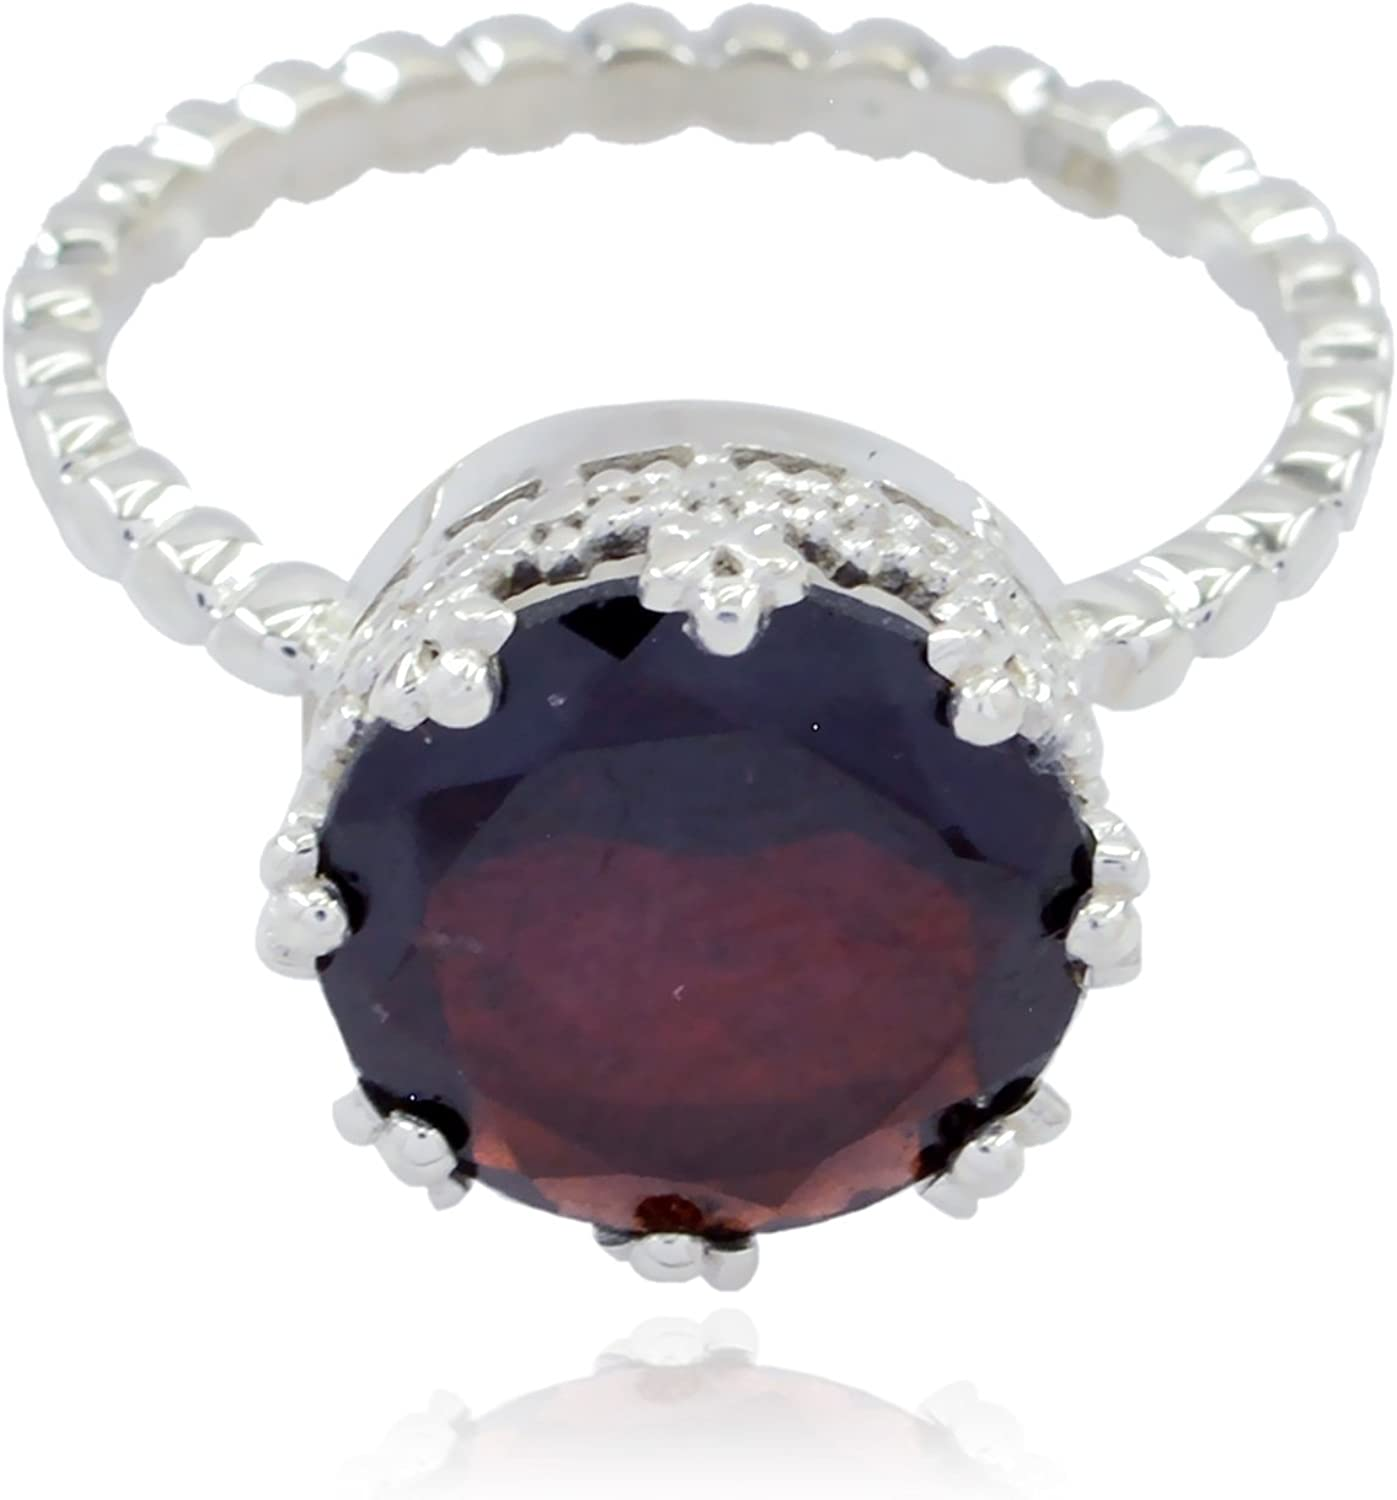 925 Sterling Silver Red Garnet Lucky Gemstone Ring jents Jewelry Good Item Gift for Girlfriend Bohemian Lucky Gemstone Round Faceted Garnet Ring